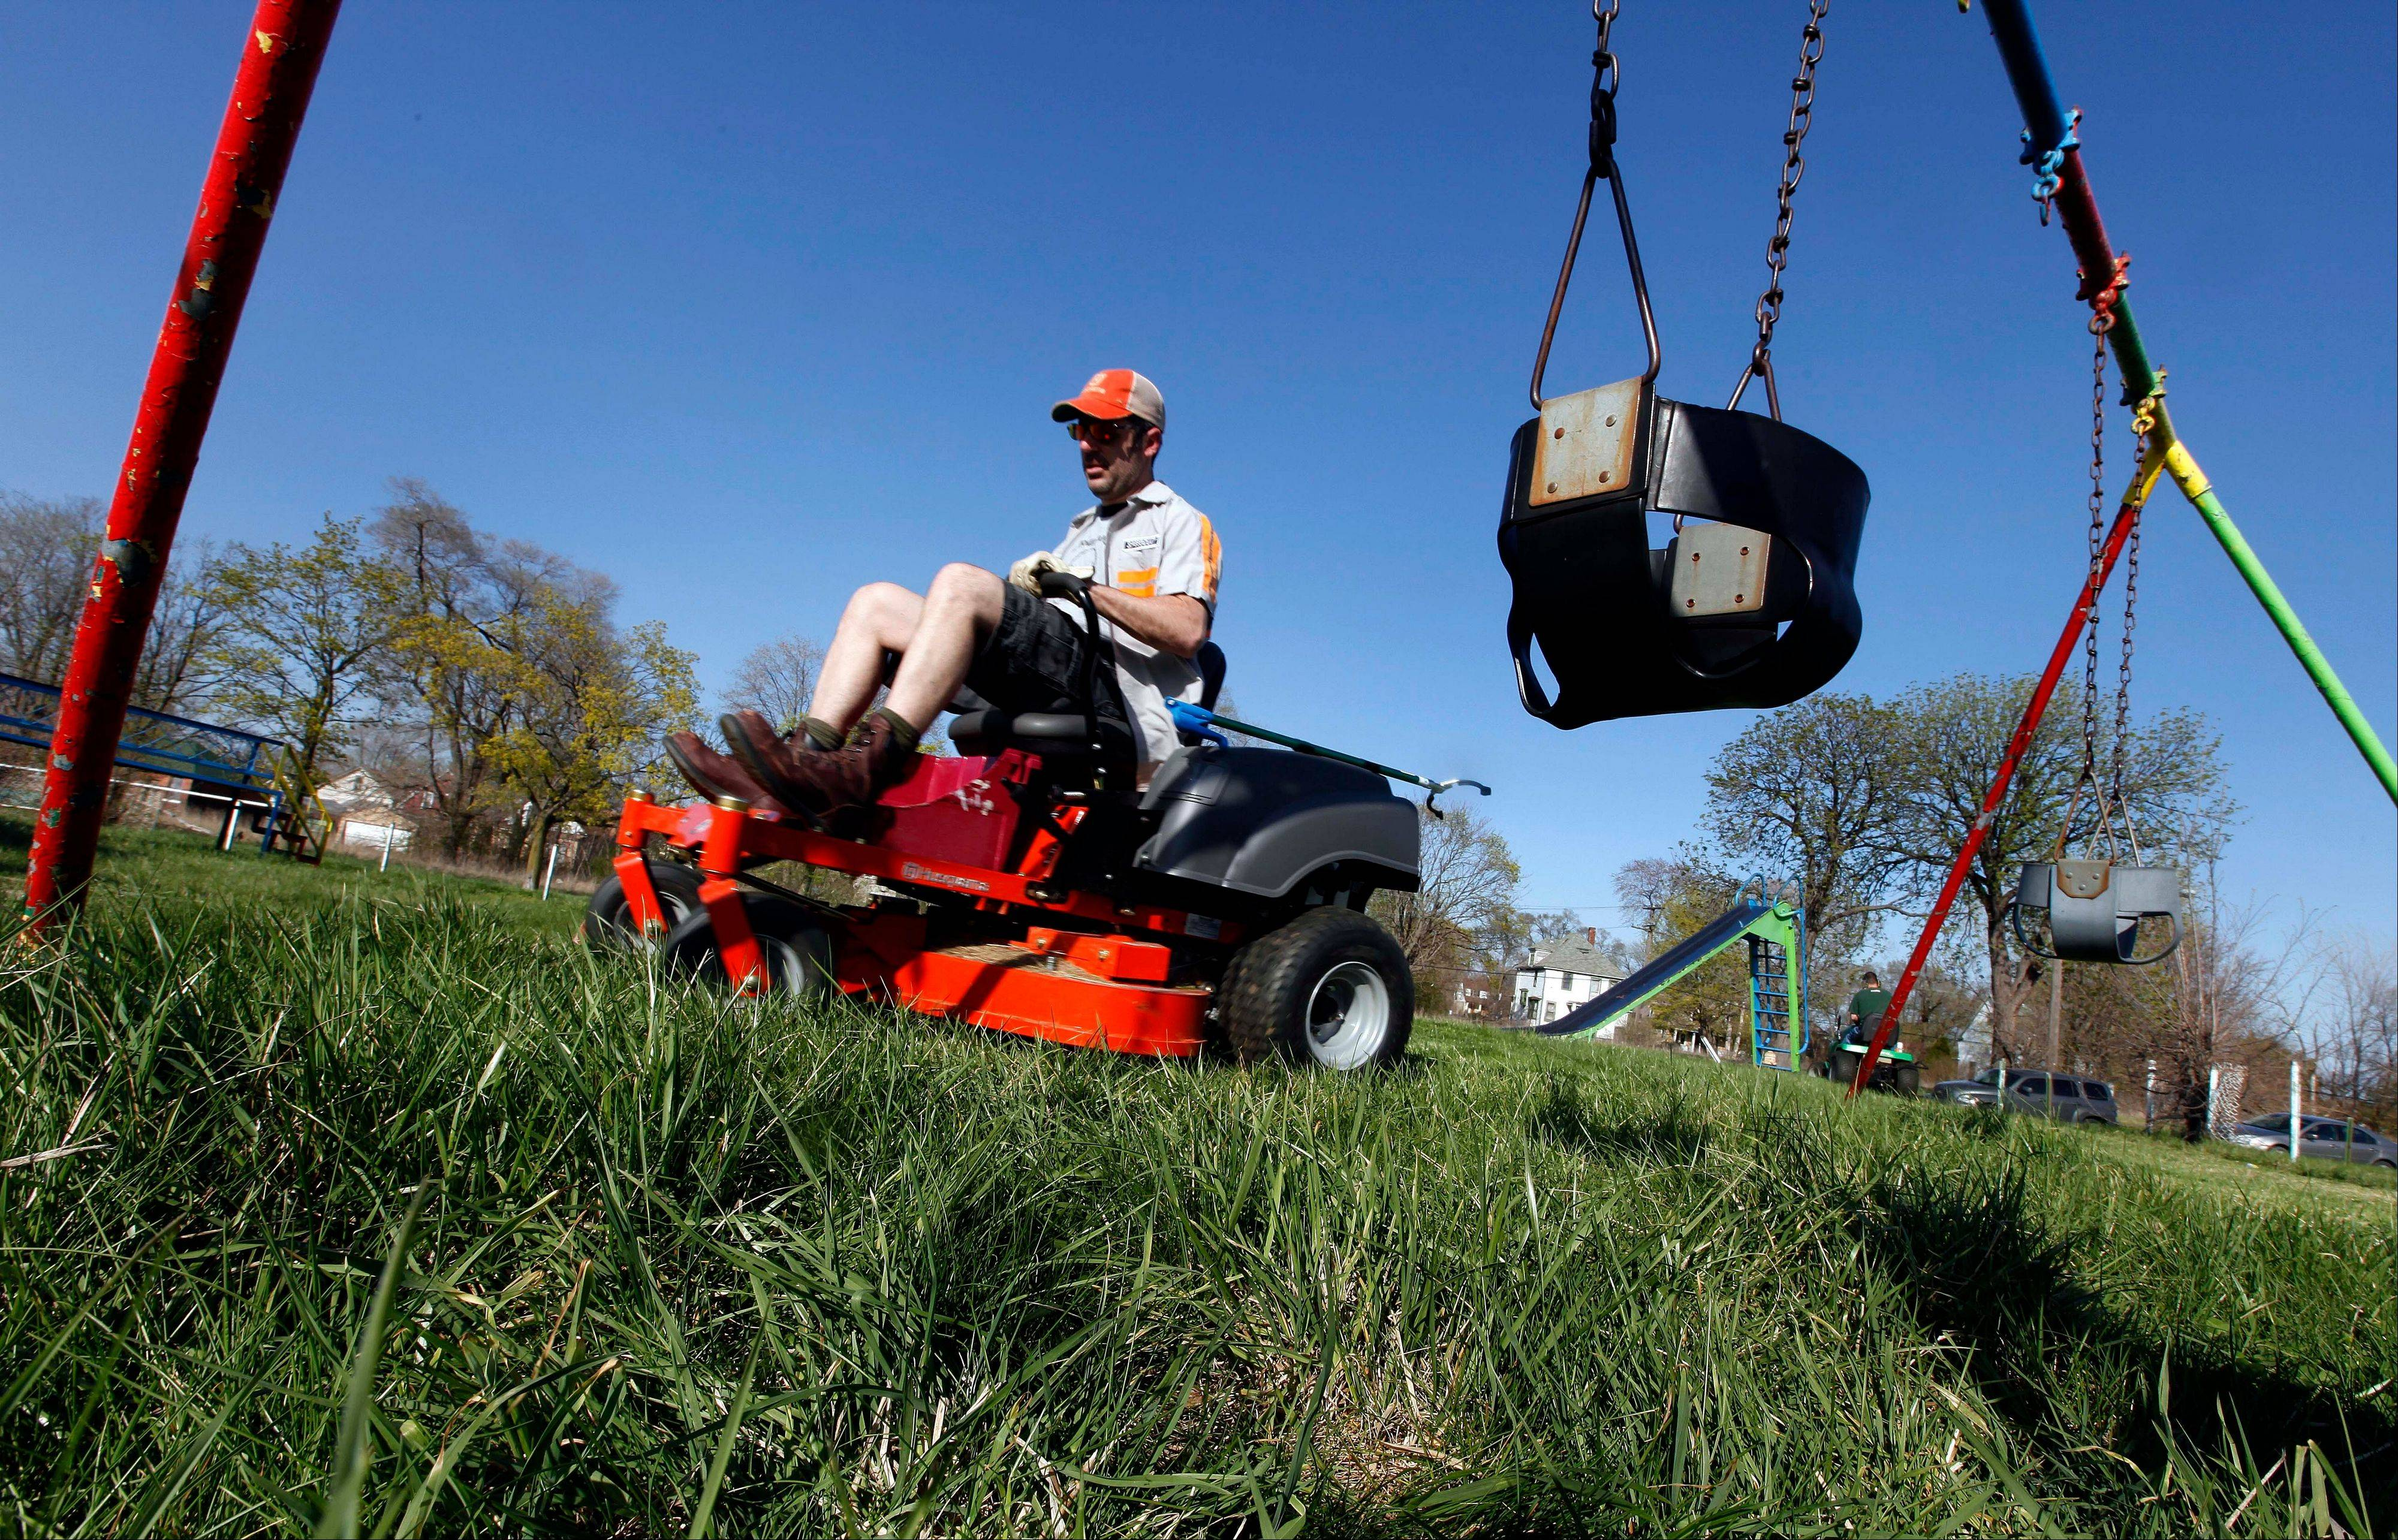 Mower gang member Tom Nardone of Birmingham drives a riding mower at Duweke Park in Detroit earlier this month. The Mower Gang, a group of volunteer lawn mower riders, adopt parks beginning in the spring and keep them free of high-grass throughout the summer.